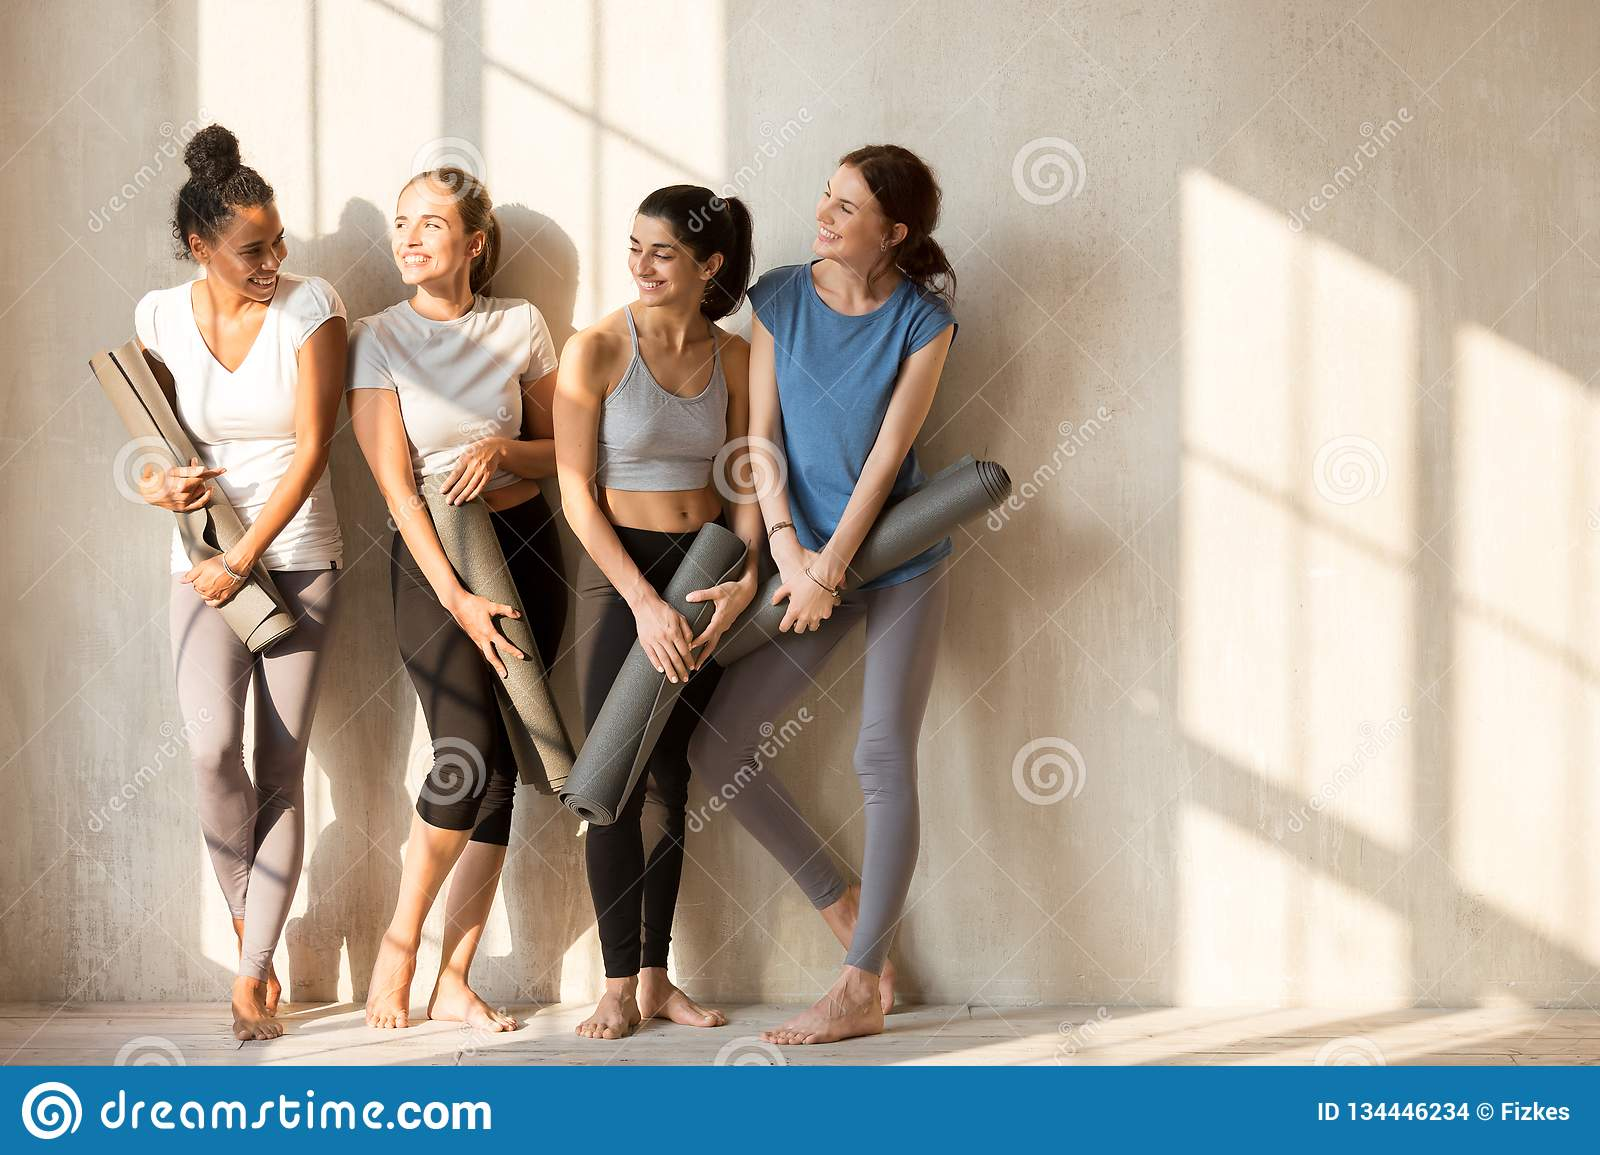 On A Sunny Morning Girls Gathered At Gym For Workout Stock Photo